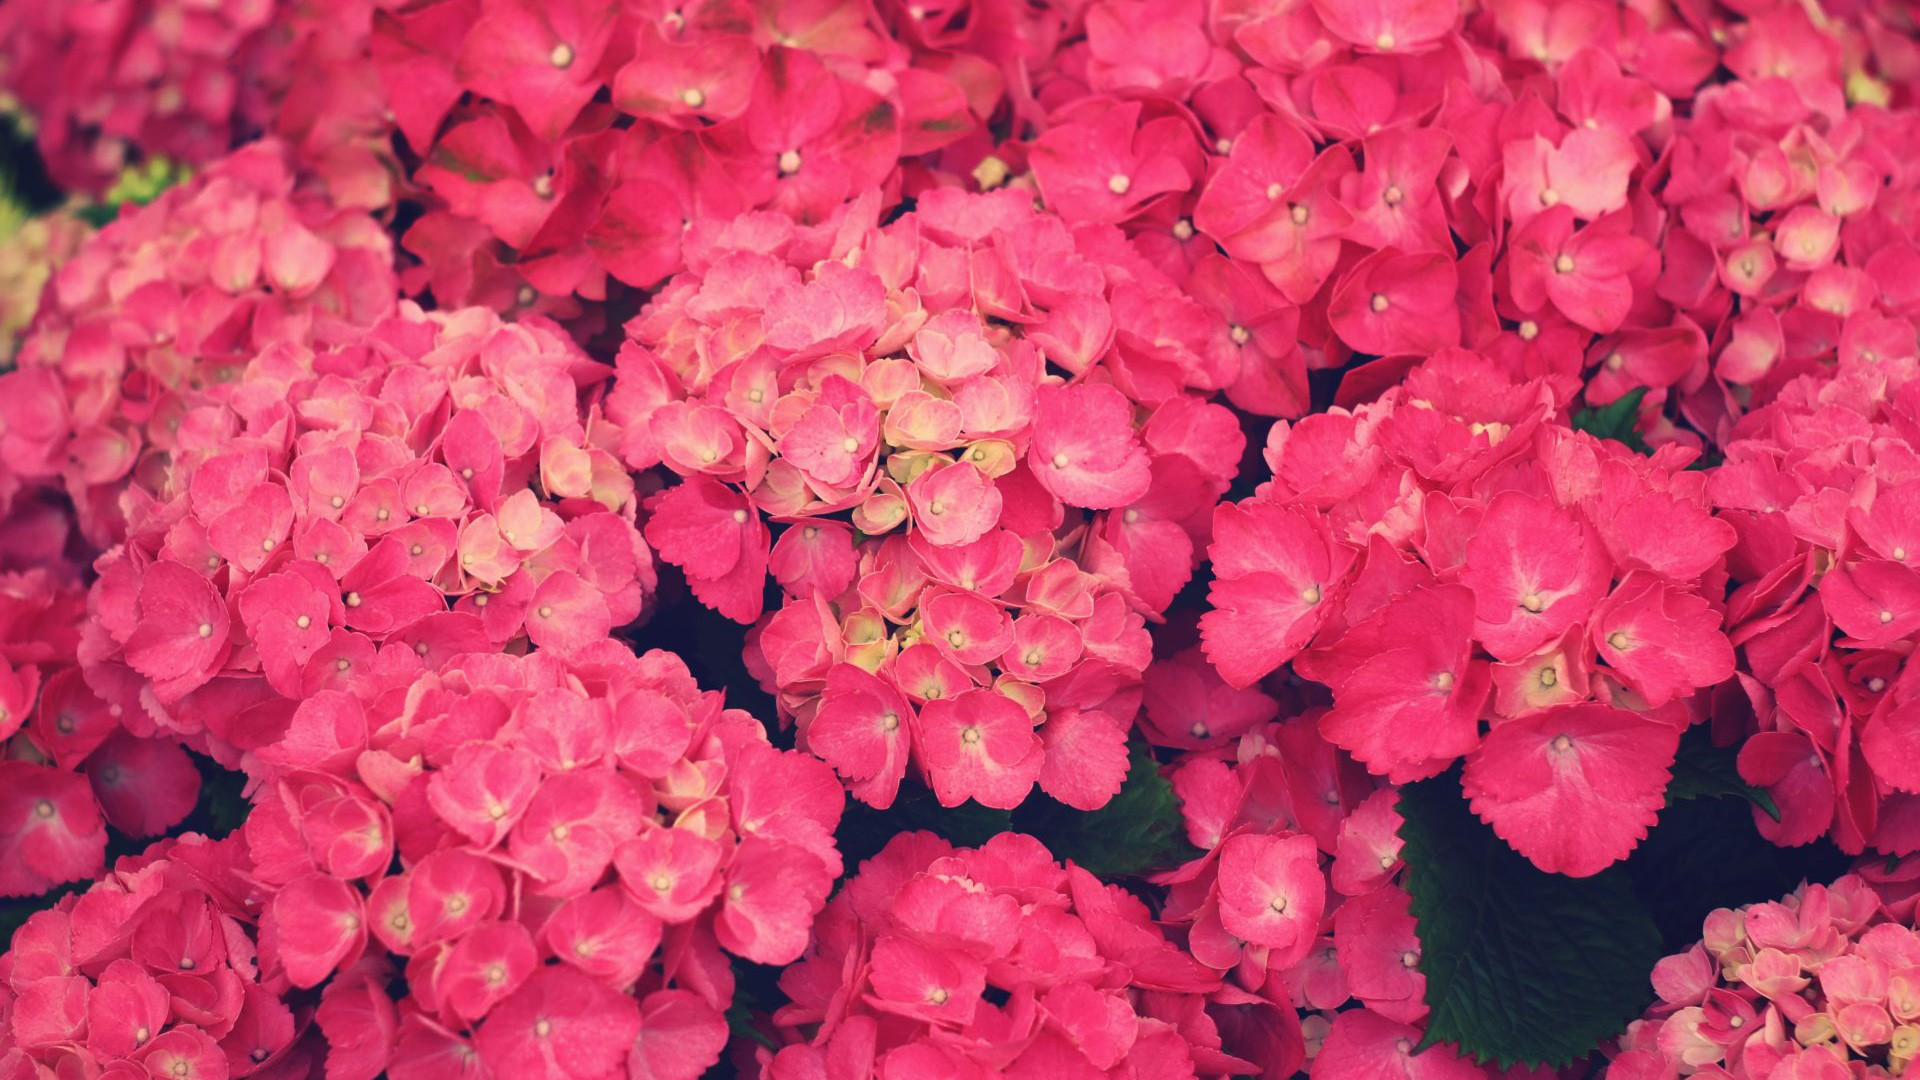 1920x1080 Pink Flowers desktop PC and Mac wallpaper 1920x1080